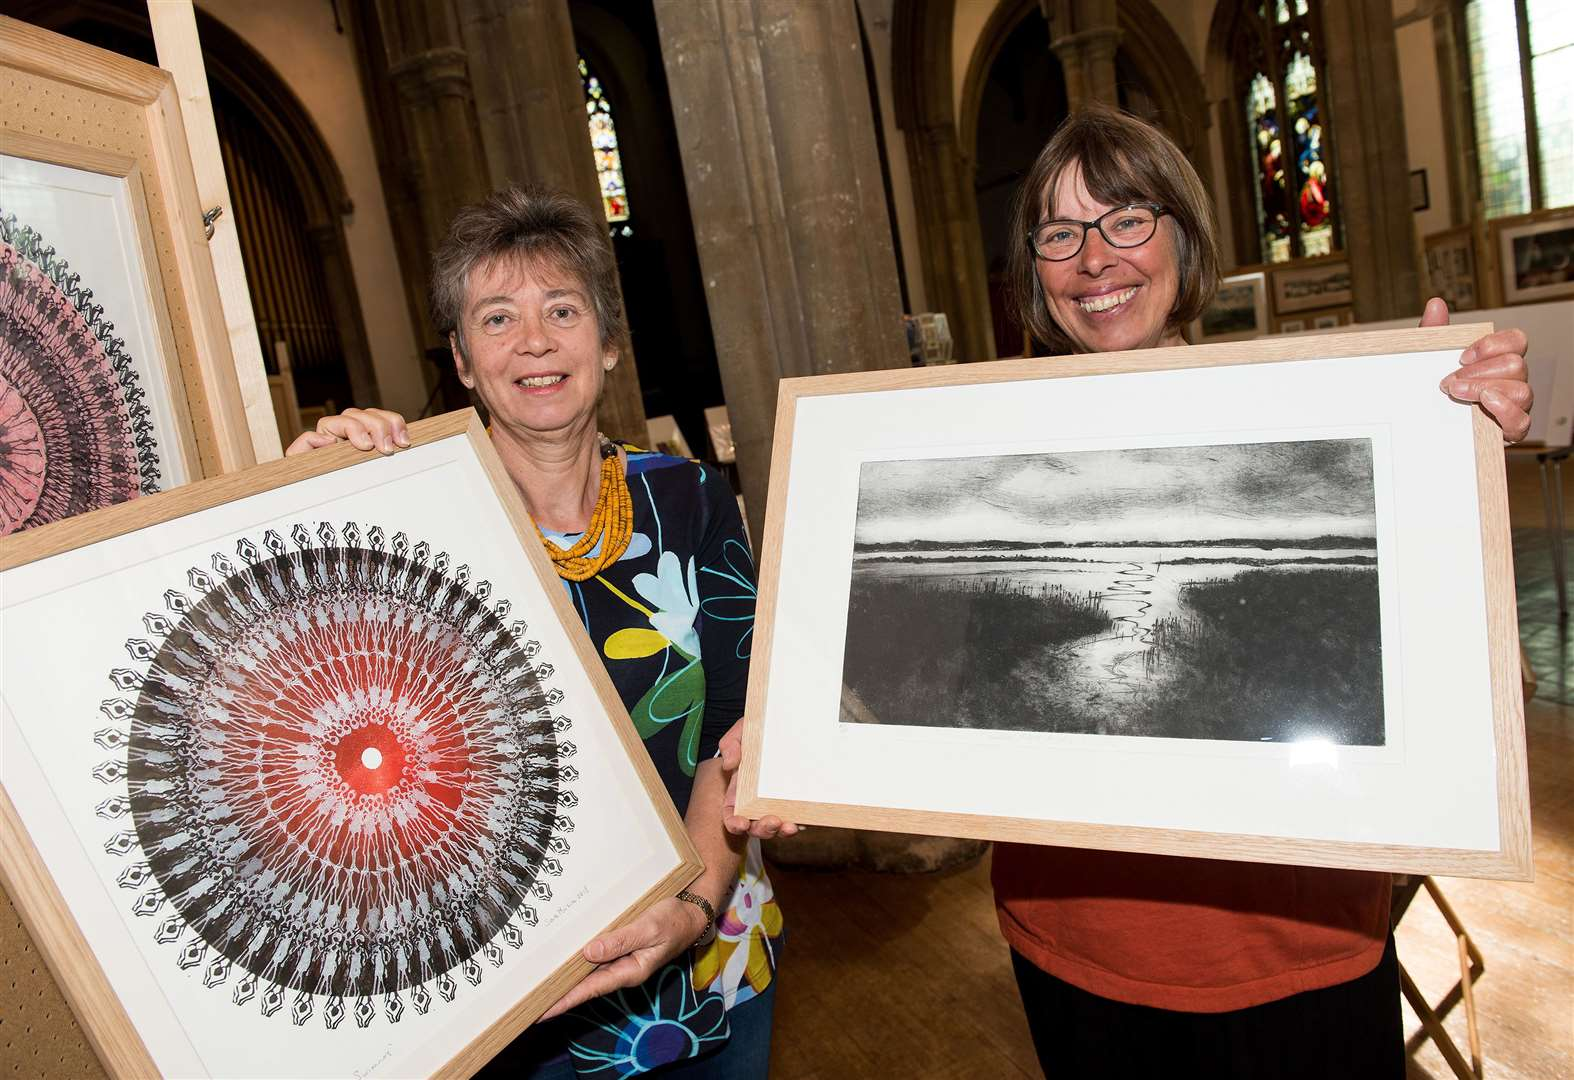 PICTURES: Printmakers' art rubs off on visitors at show in Sudbury